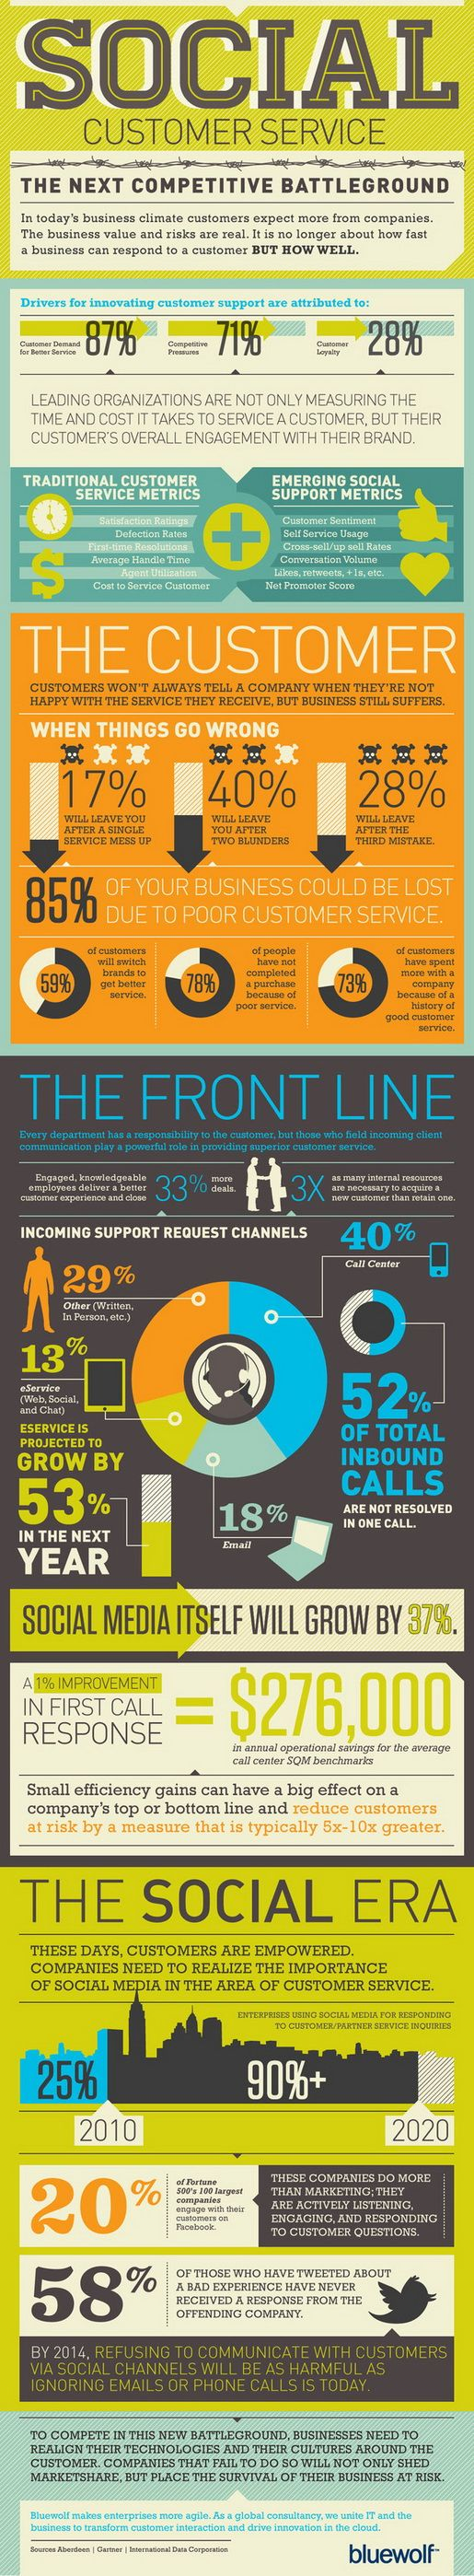 #social customer service is the next competitive battleground that #marketer and company has to face.